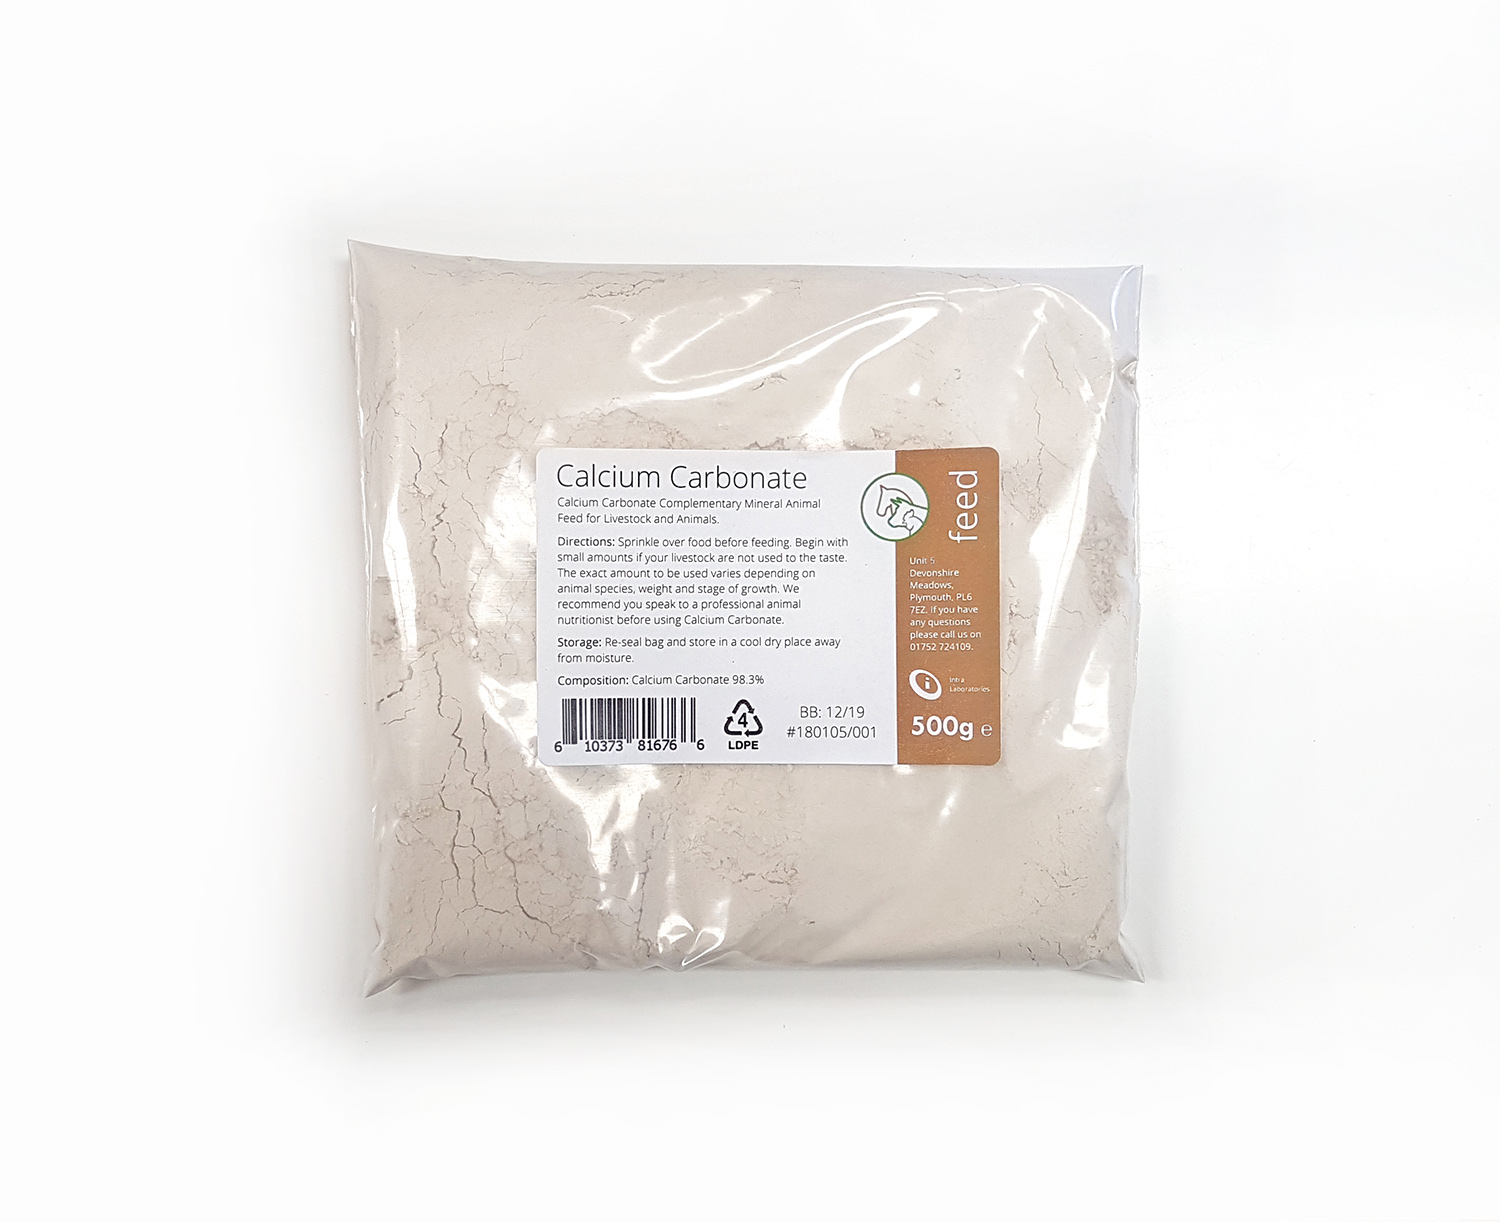 500g - Calcium Carbonate